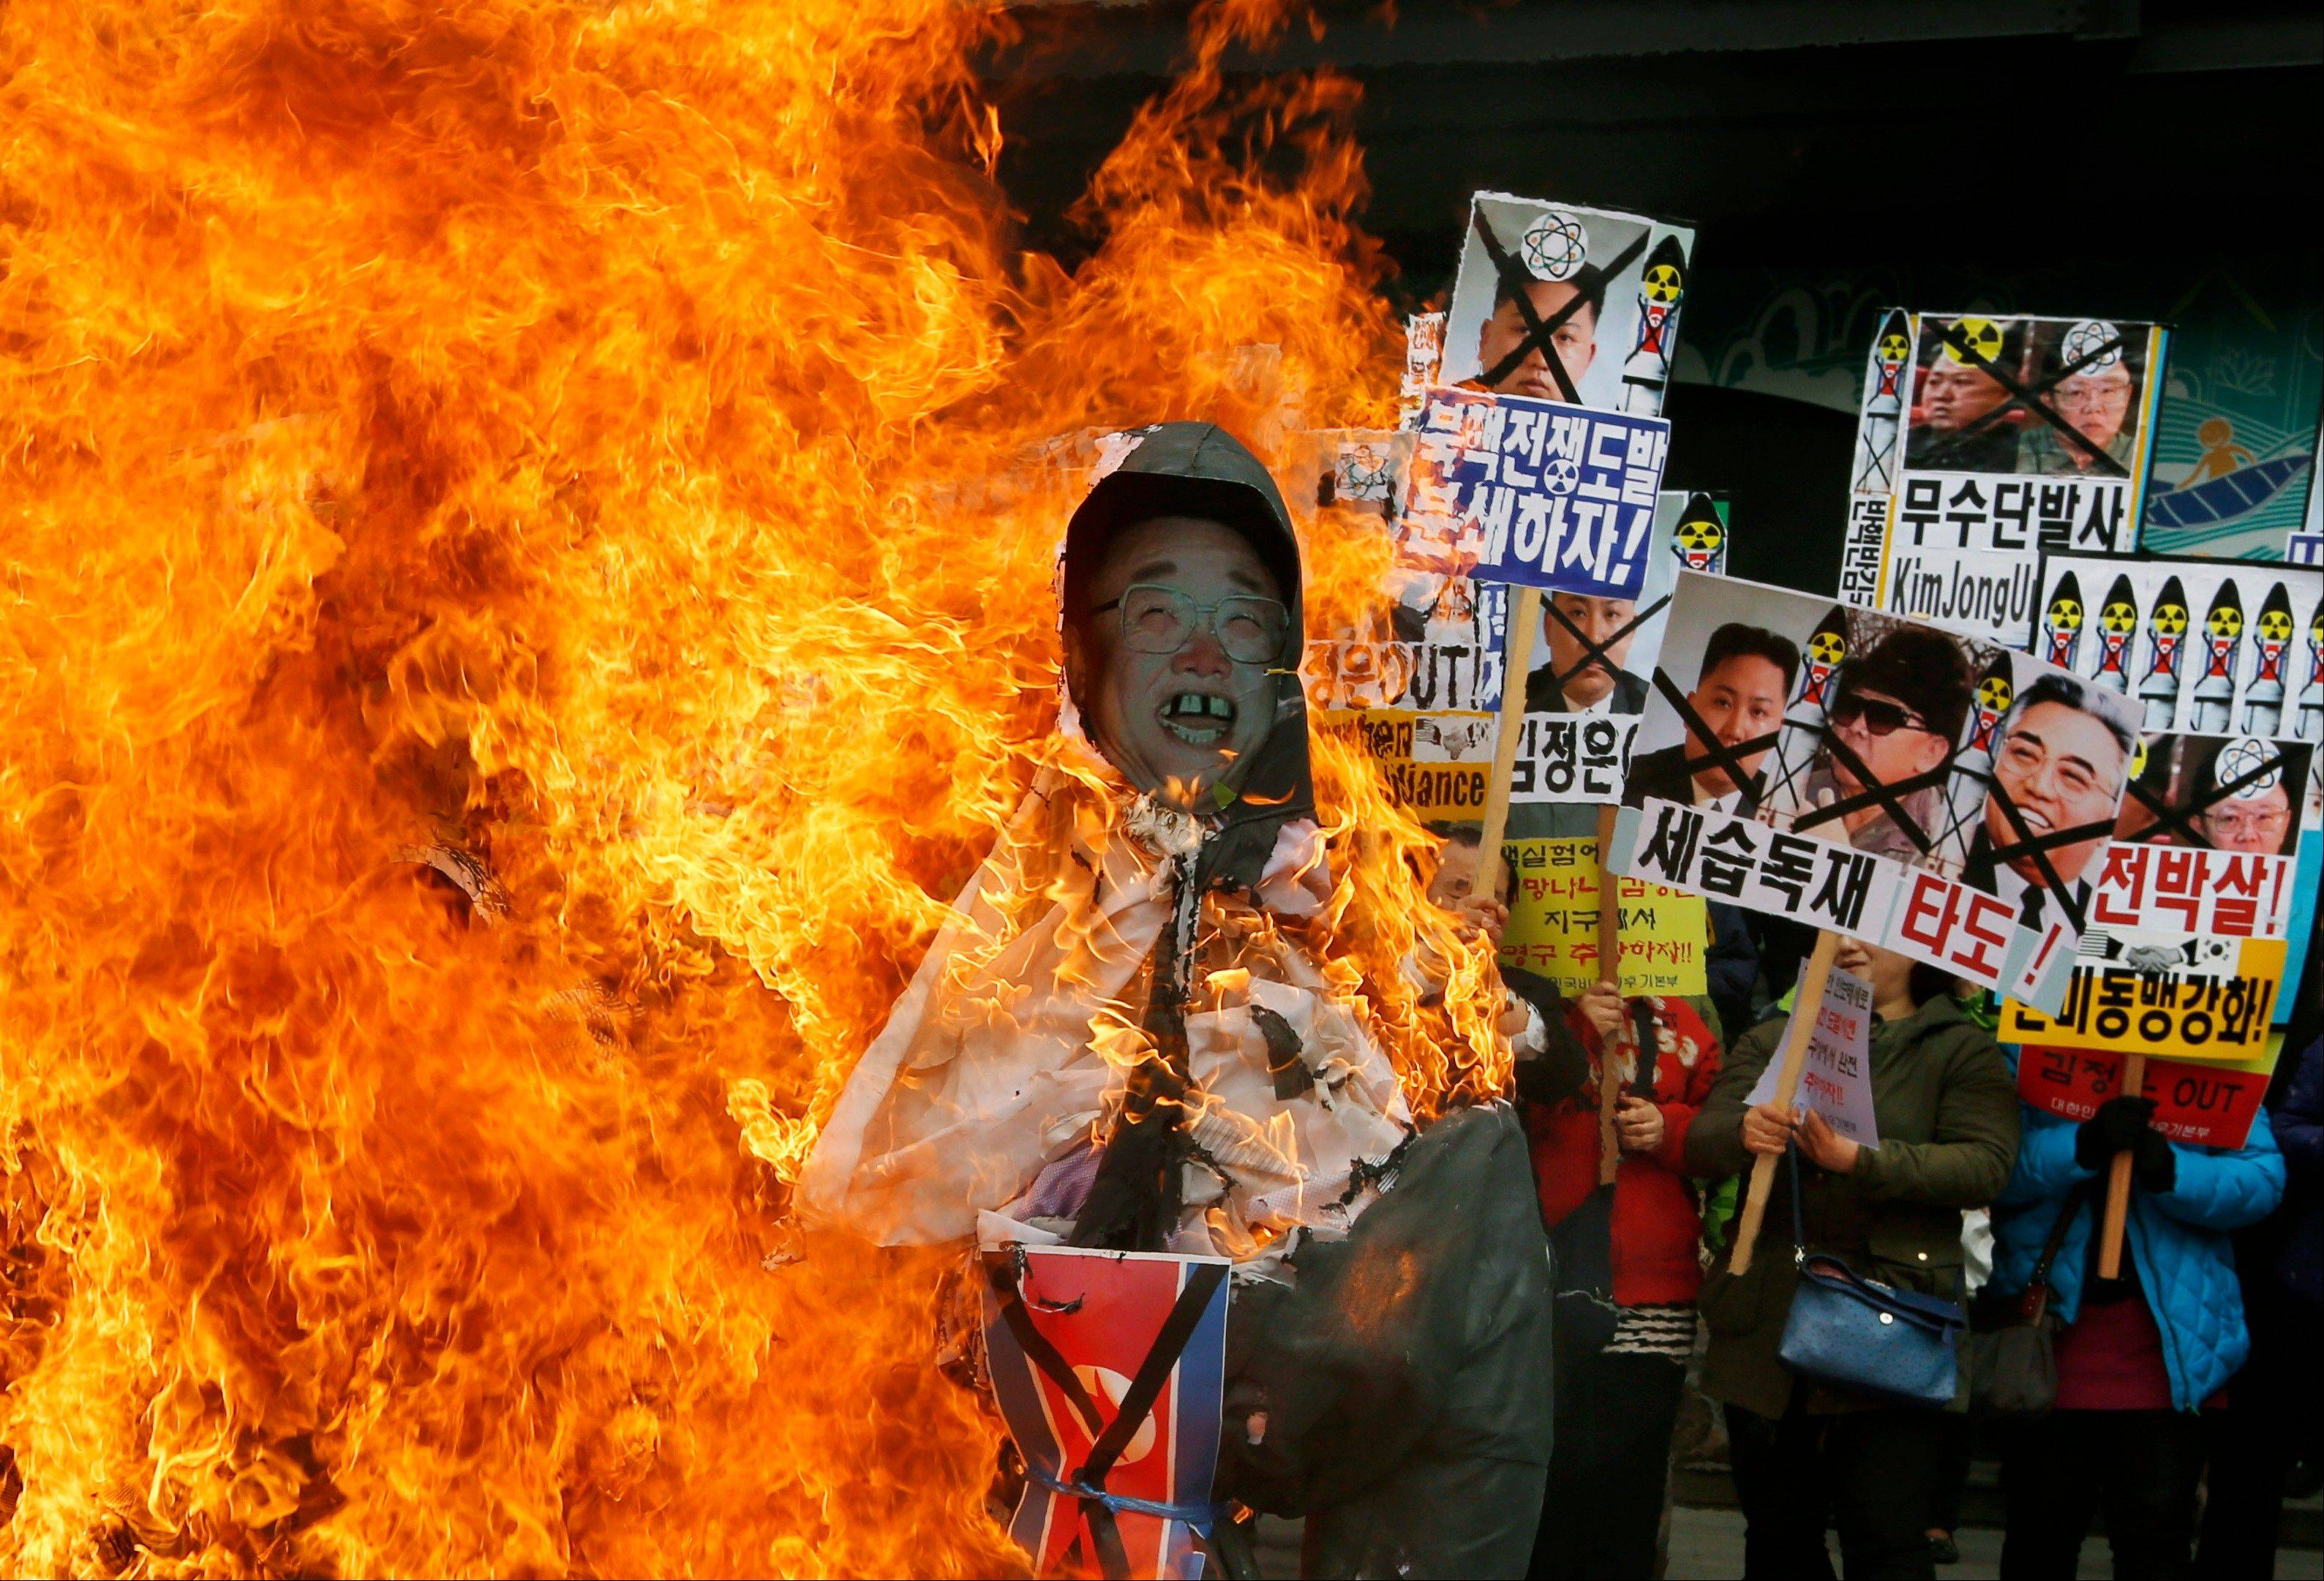 South Korean protesters burn effigies of North Korean leader Kim Jong-Un, and late leaders Kim Jong Il and Kim Il Sung at an anti-North Korea protest on the birthday of Kim Il Sung in Seoul, South Korea. North Korea lashed out anew Tuesday, April 16, 2013 at South Korea over the small public protest, saying it would not hold talks with its southern neighbor unless it apologized for anti-North Korean actions �big and small.� The sign at center showing images of the Kim family reads �Throw Them Out.�